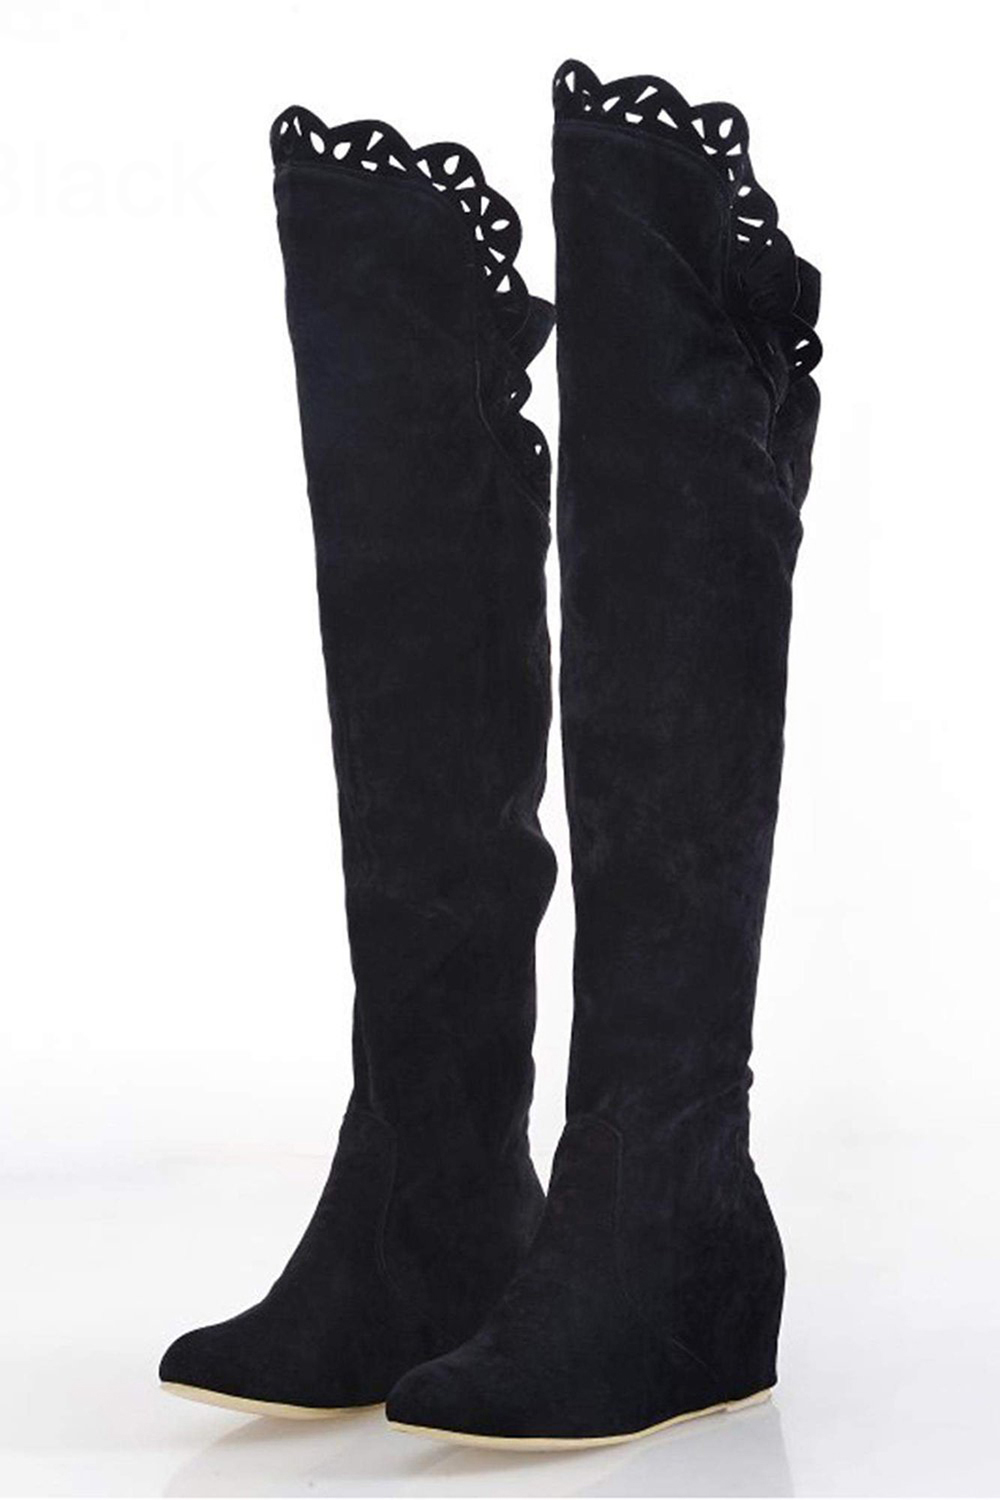 Women Stretch Faux Suede Slim Thigh lace High Boots Sexy Over the Knee Boots High Heels women Shoe 35-39